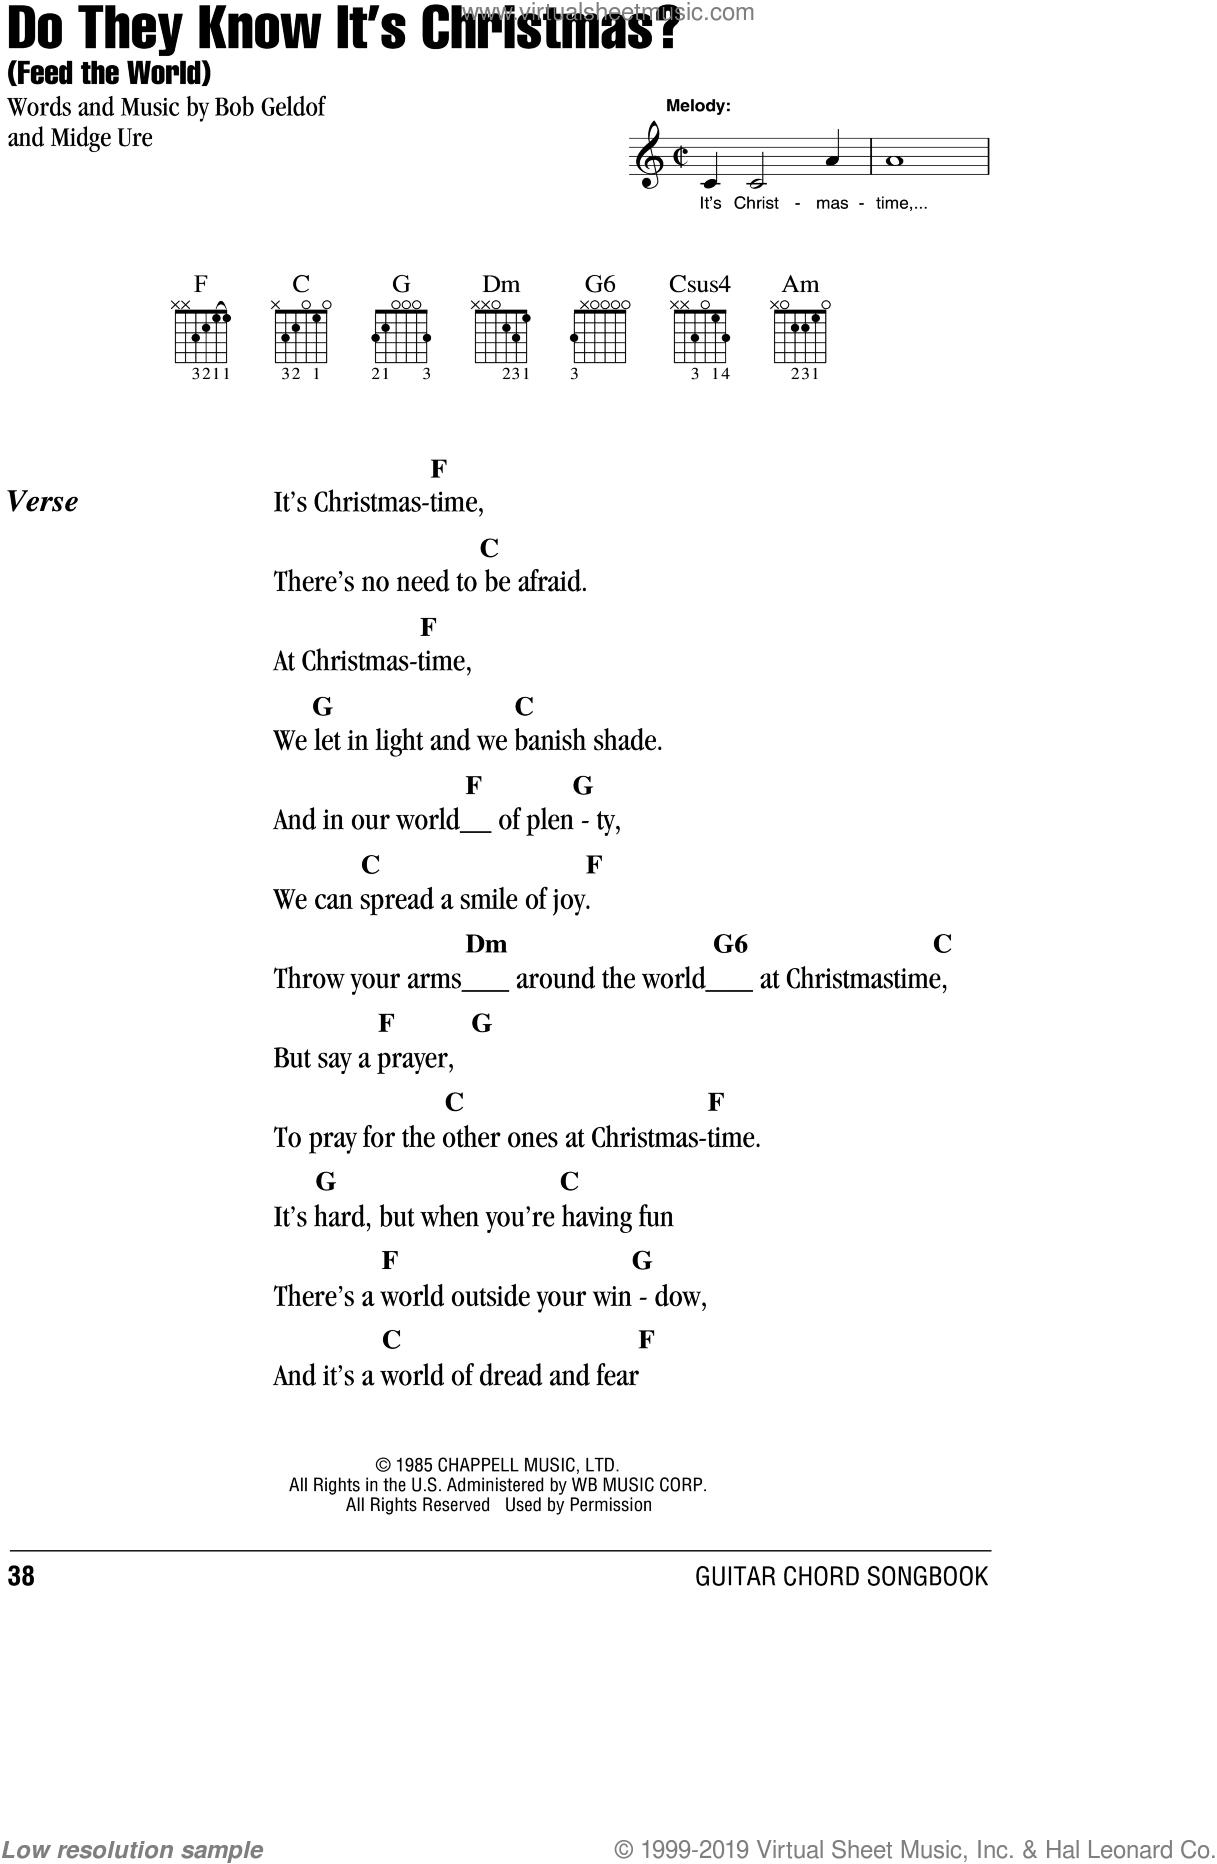 Do They Know It's Christmas? sheet music for guitar (chords, lyrics, melody) by Midge Ure